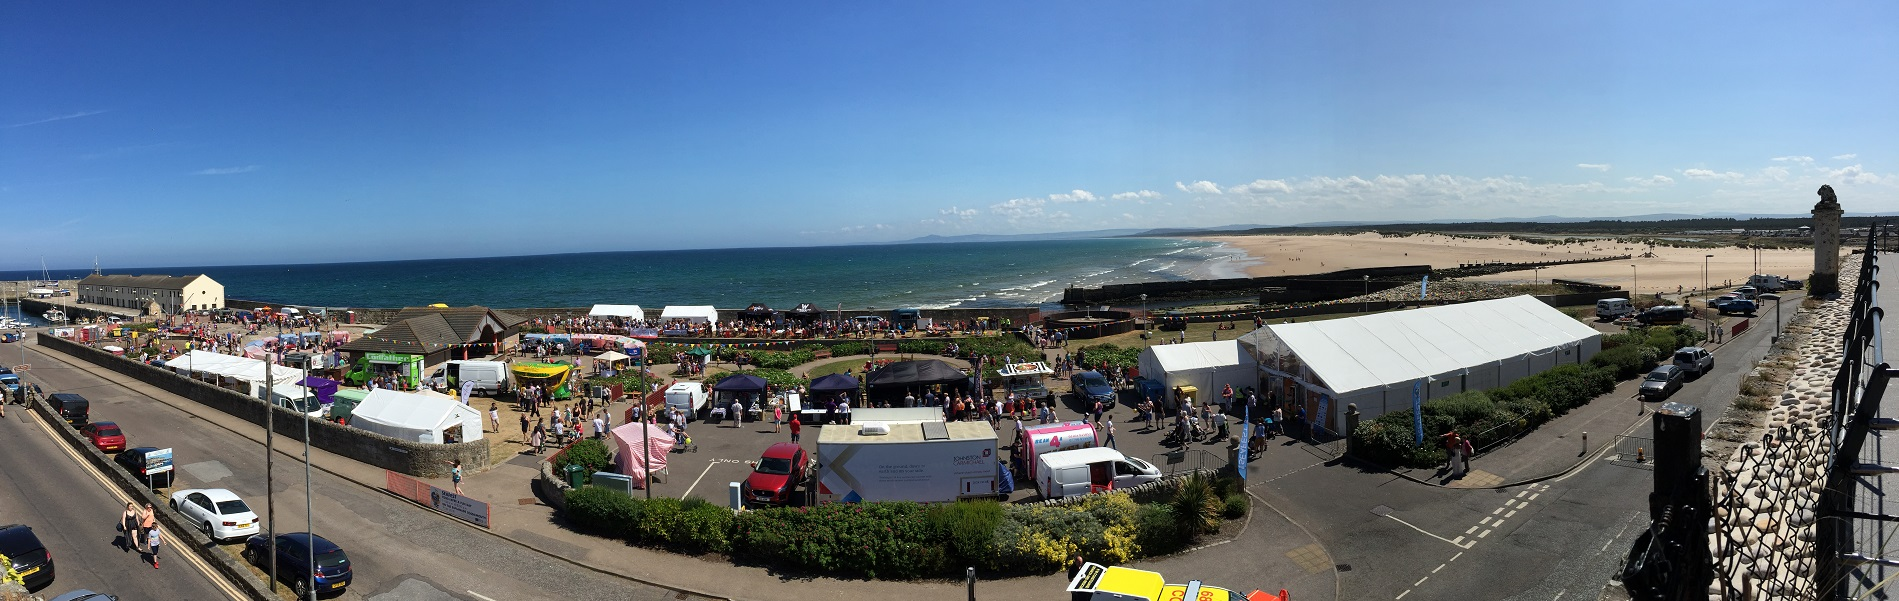 Seafest Lossiemouth